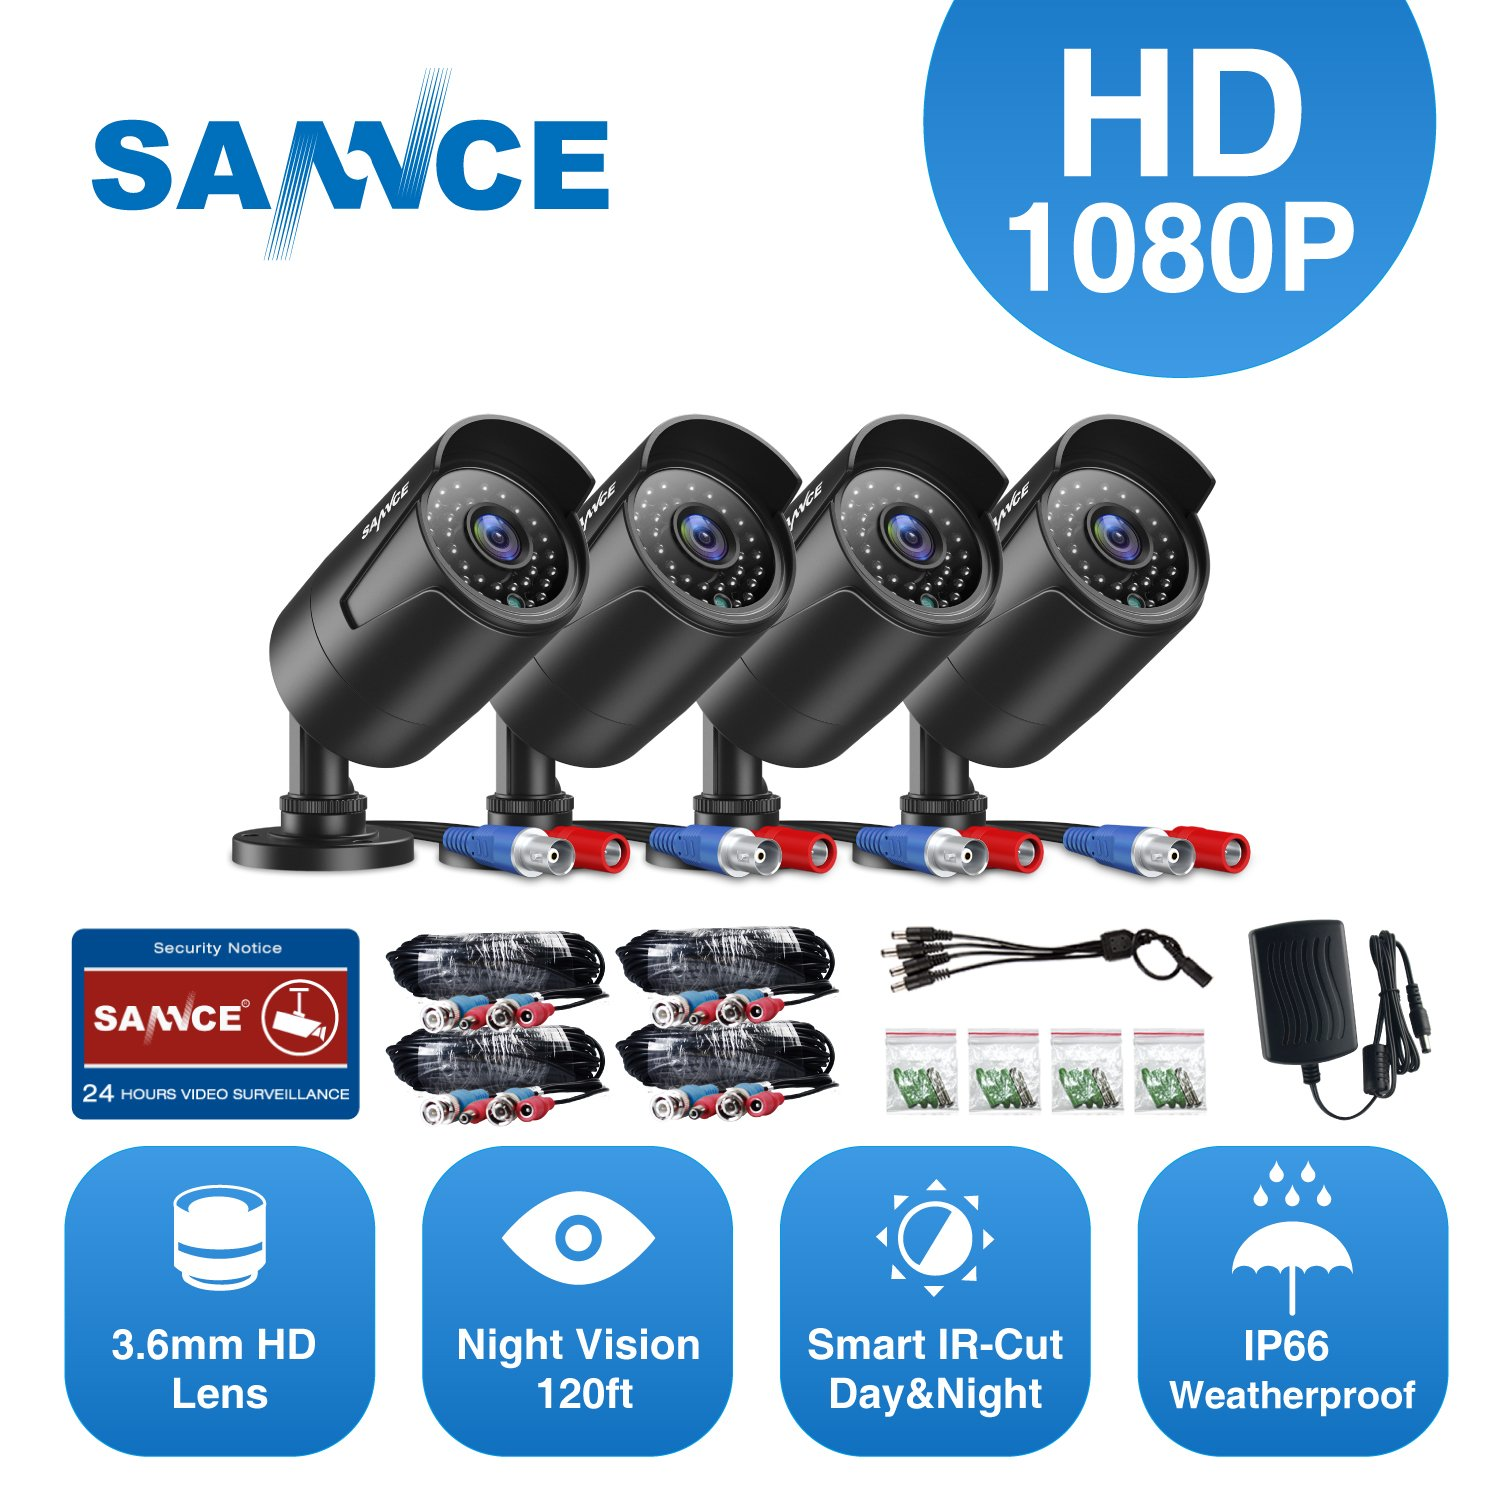 SANNCE 4 Metal Security Camera Kits 1/2.7'' 1080P(2MP) AHD Video Security Surveillance CCTV Camera with 100ft Night Vision, 3.6mm Lens Outdoor/Indoor IP66 Weatherproof(Pack of 4) by SANNCE